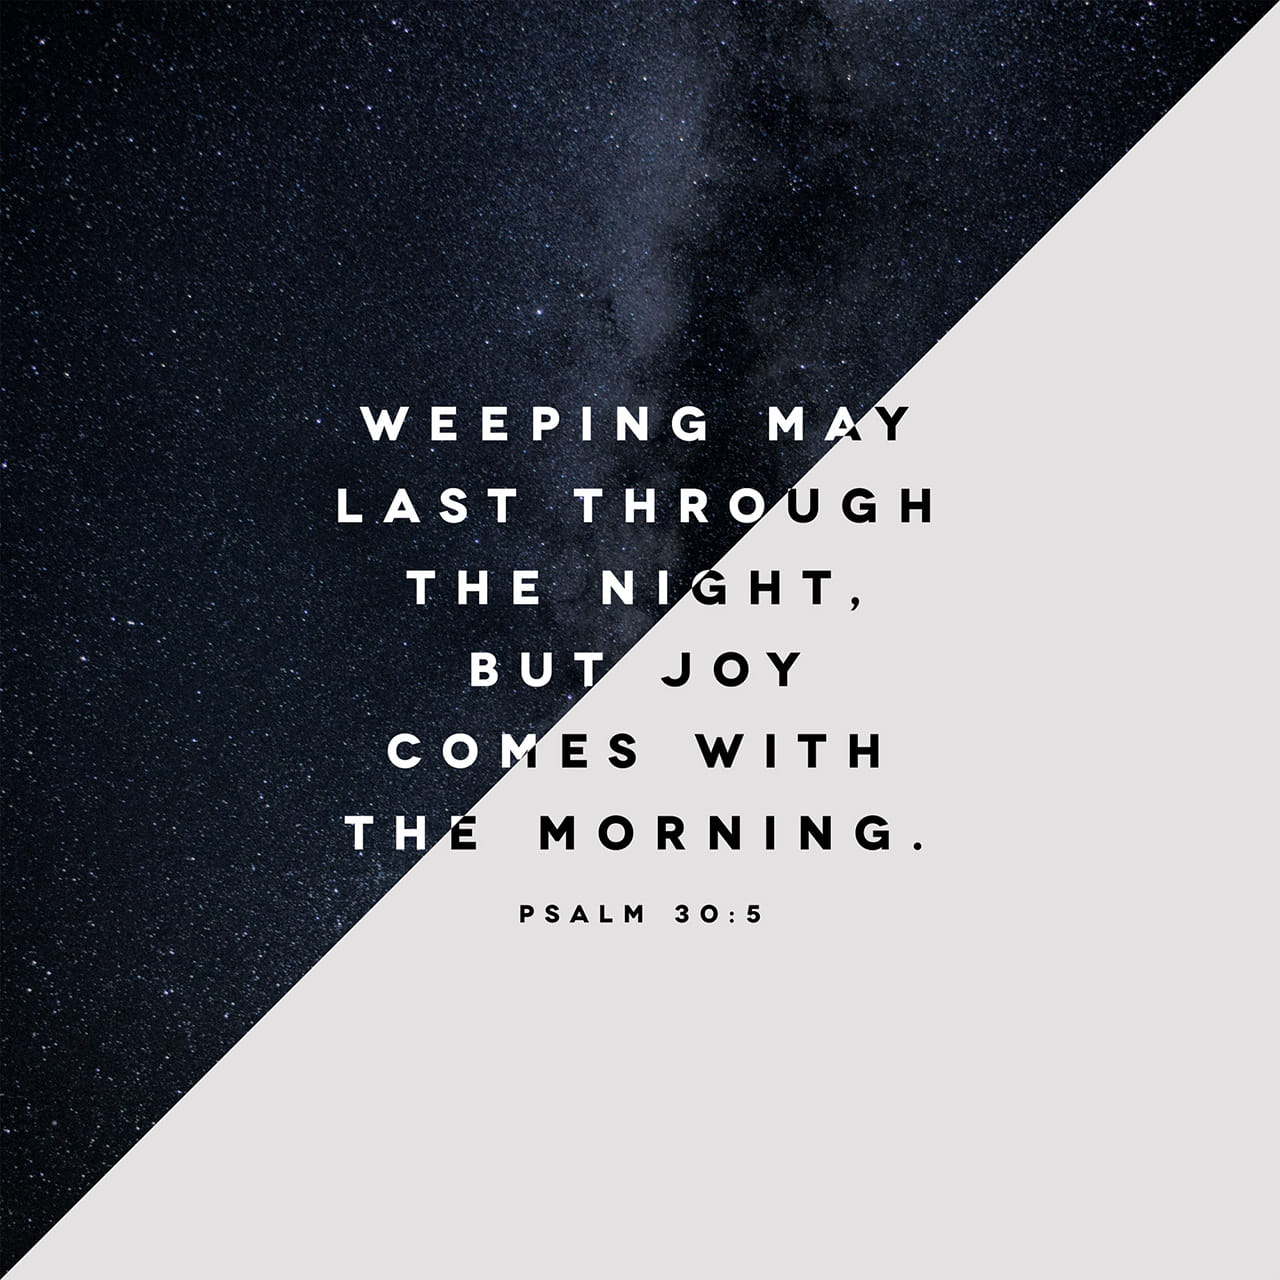 Psalms 30:5 For his anger lasts only a moment, but his favor lasts a lifetime! Weeping may last through the night, but joy comes with the morning.   New Living Translation (NLT)